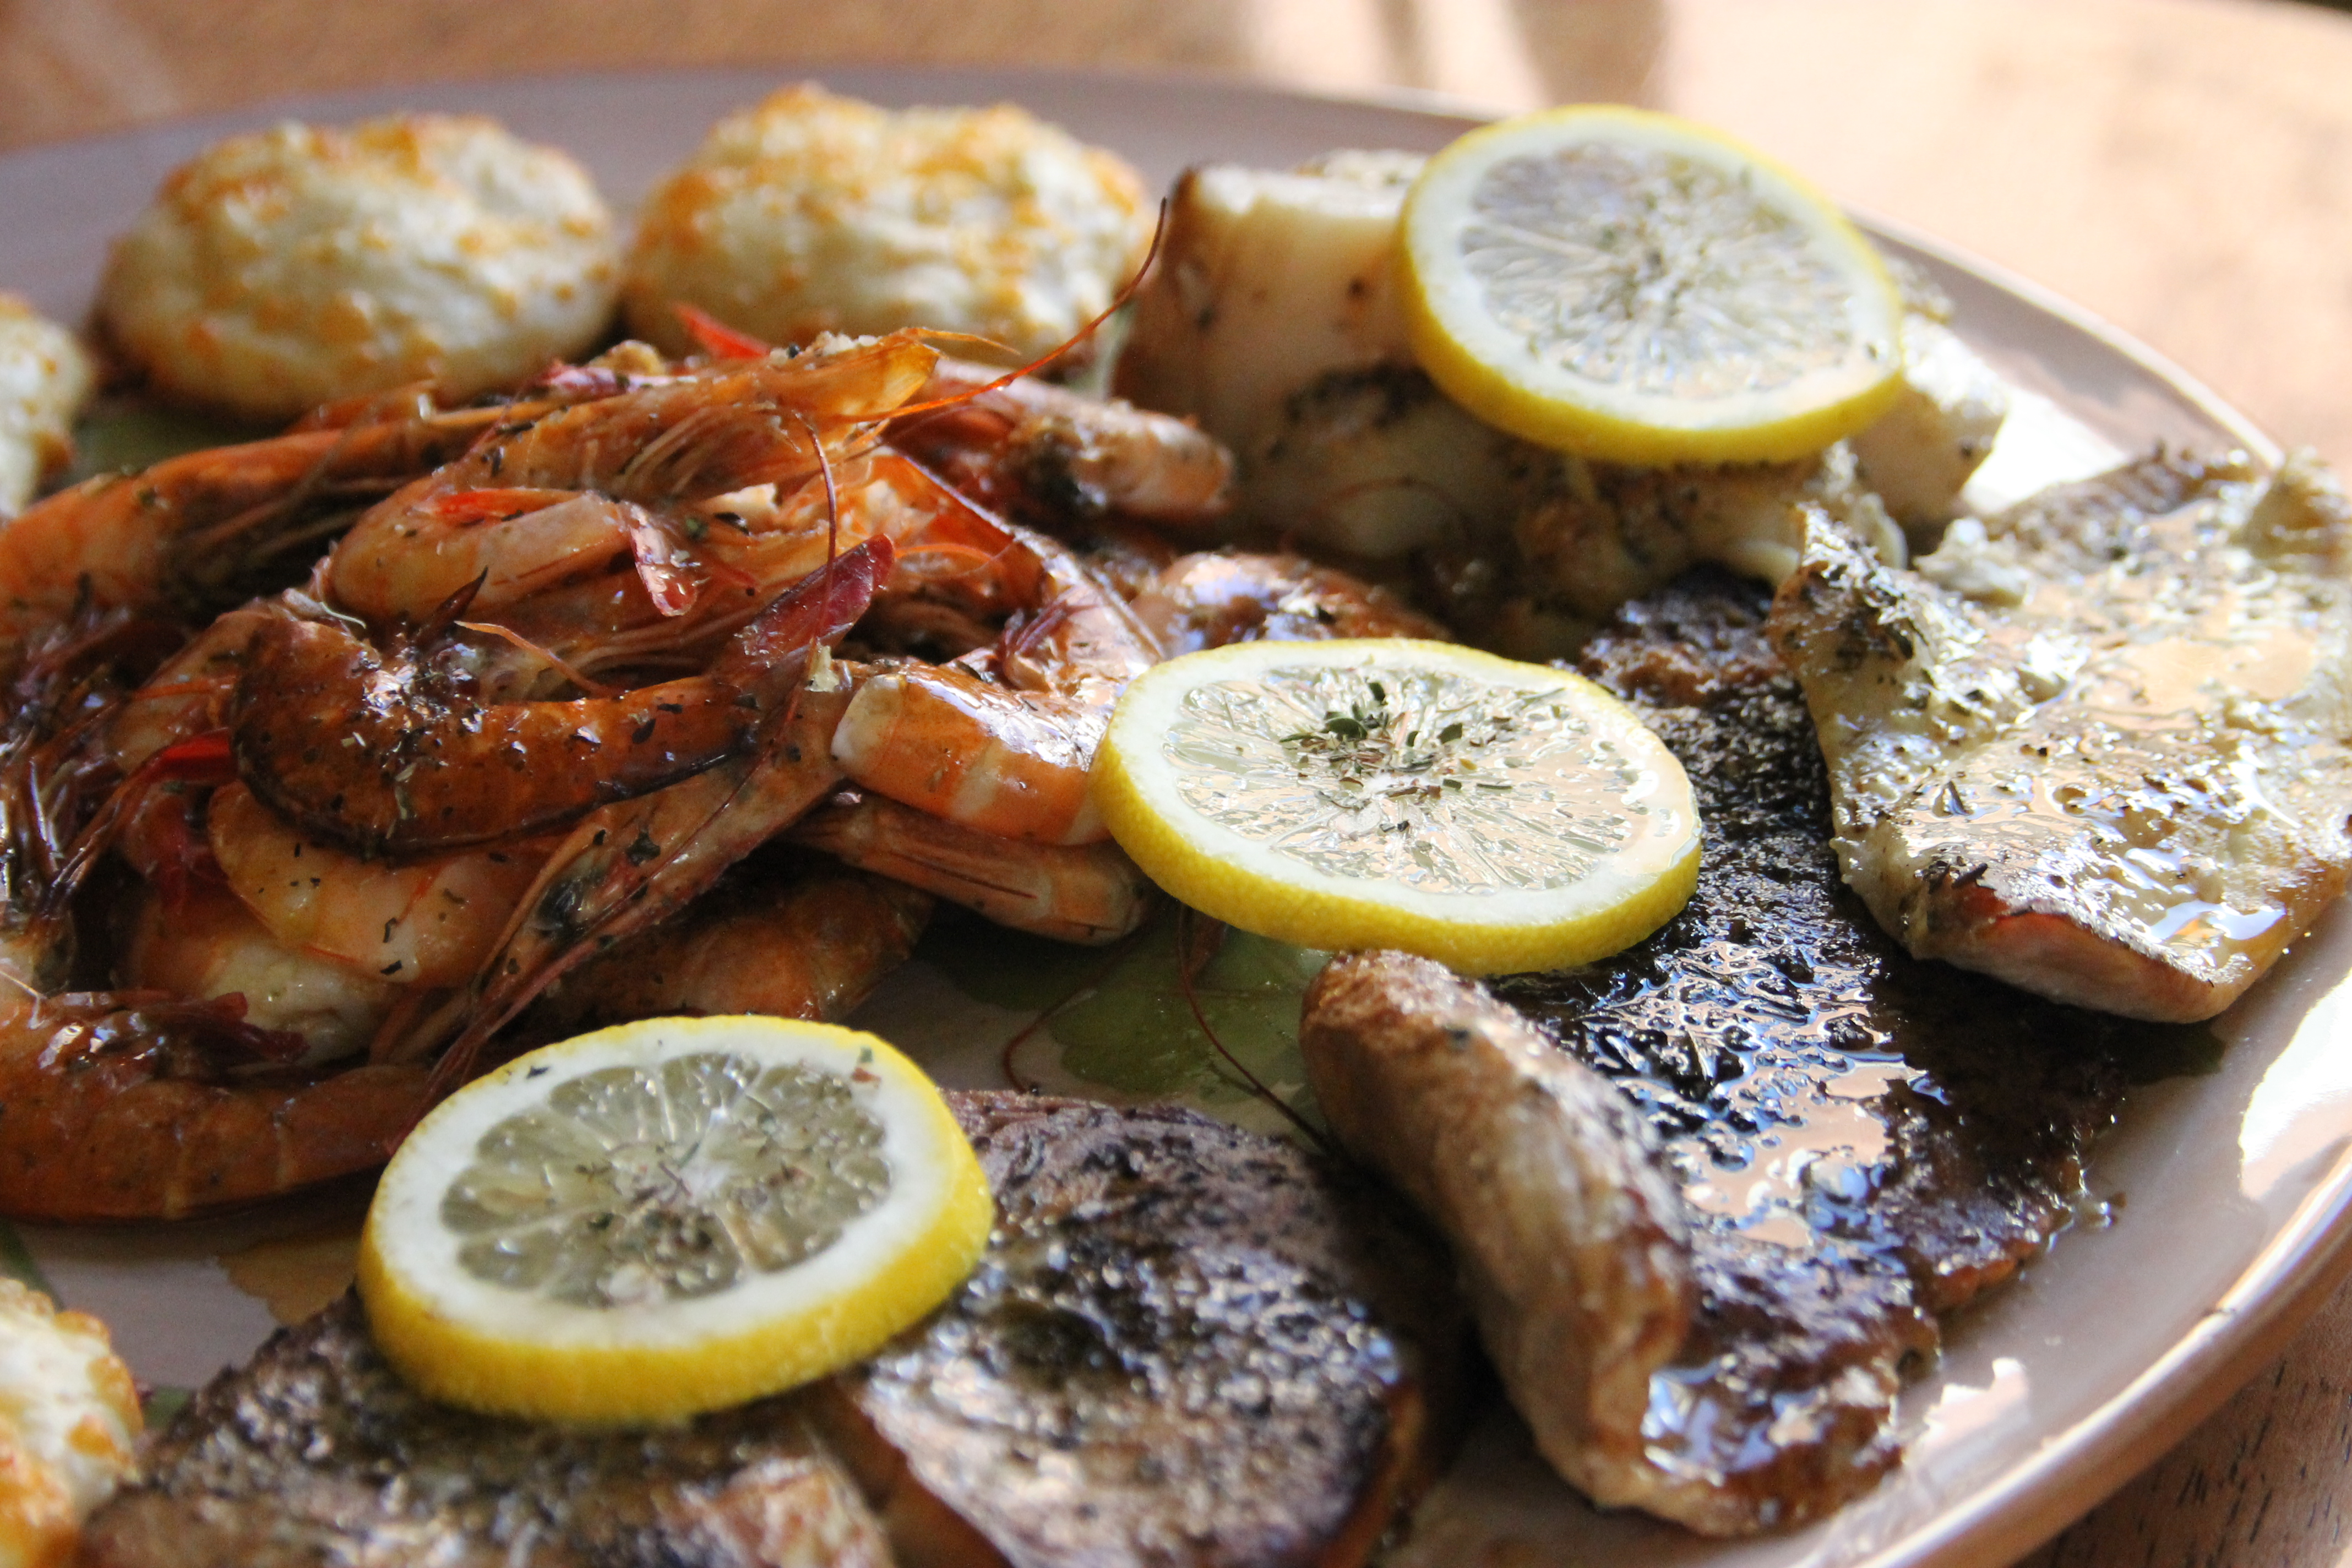 Swordfish, Georges Bank Scallops, Yellow Tail, Atlantic Snapper, Skate and Day Boat Shrimp